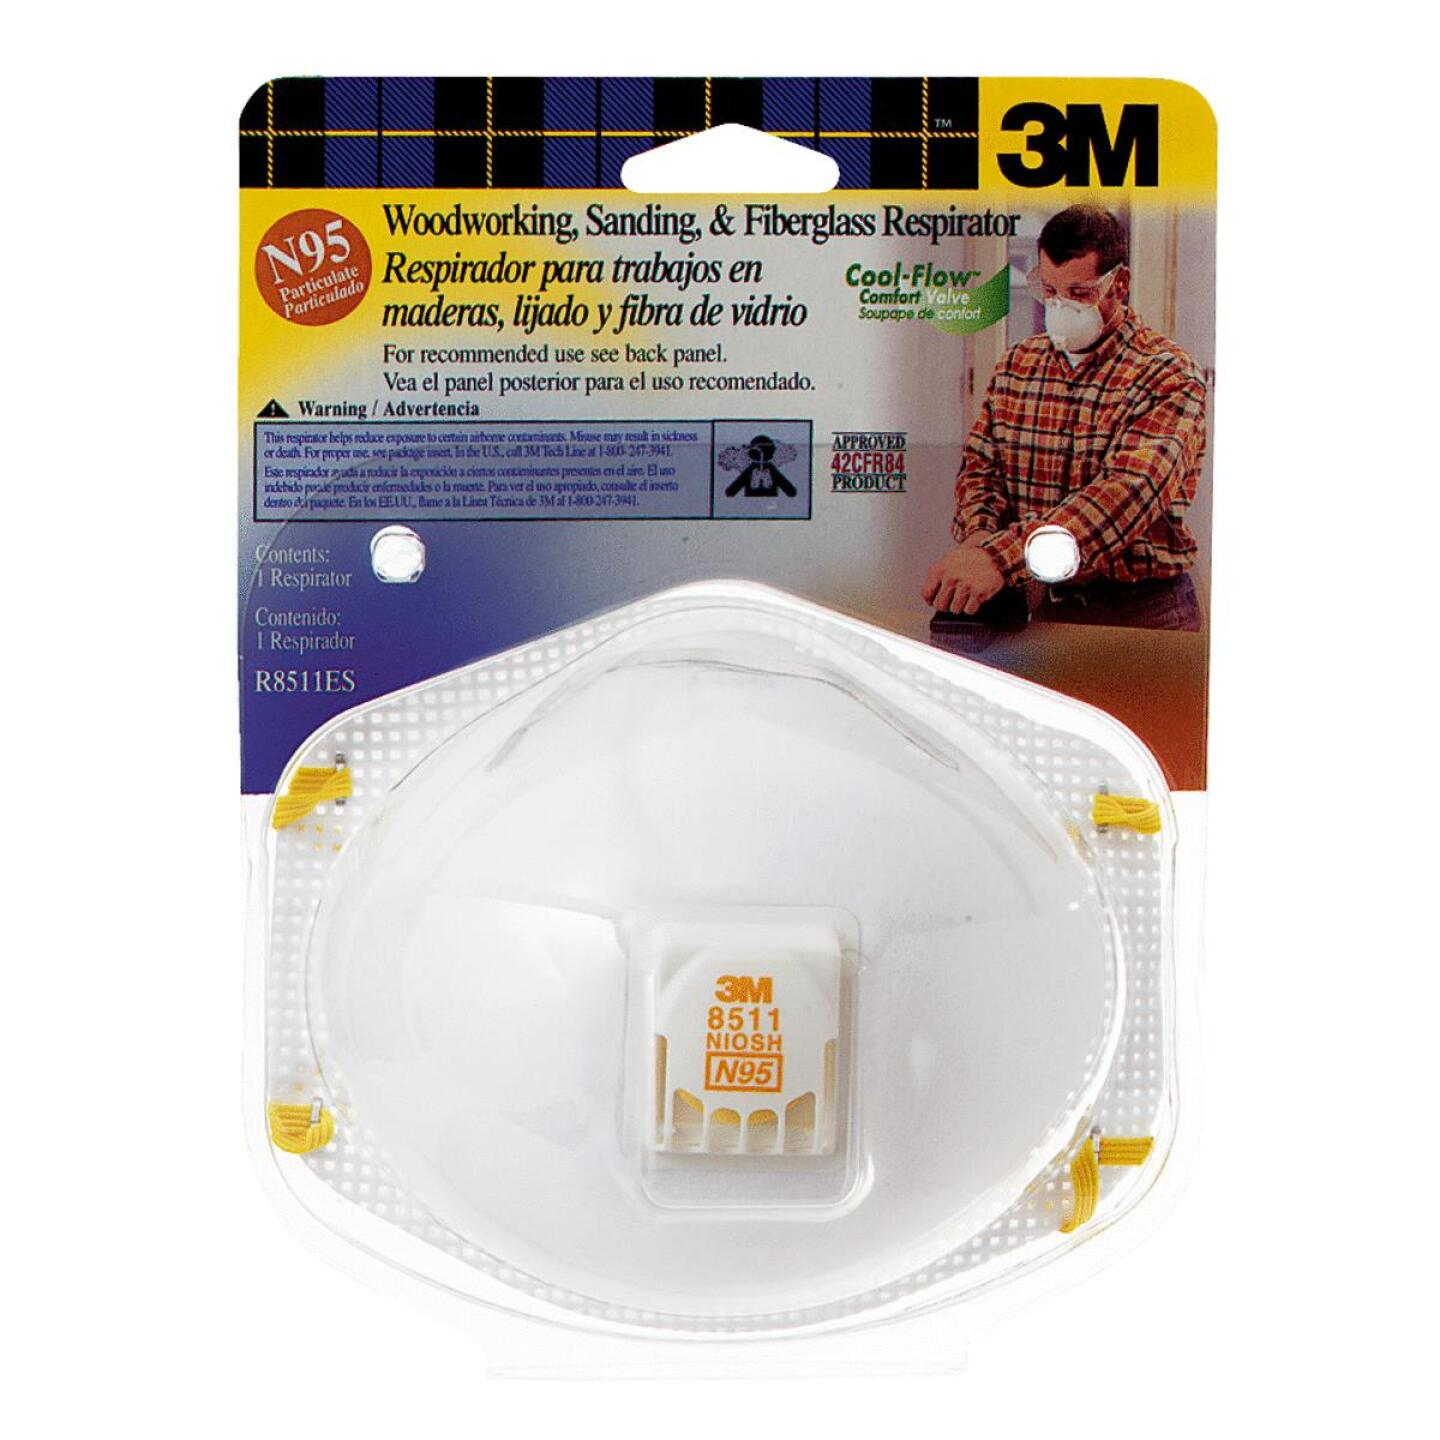 3M N95 Woodworking, Sanding and Fiberglass Valved Respirator Image 1